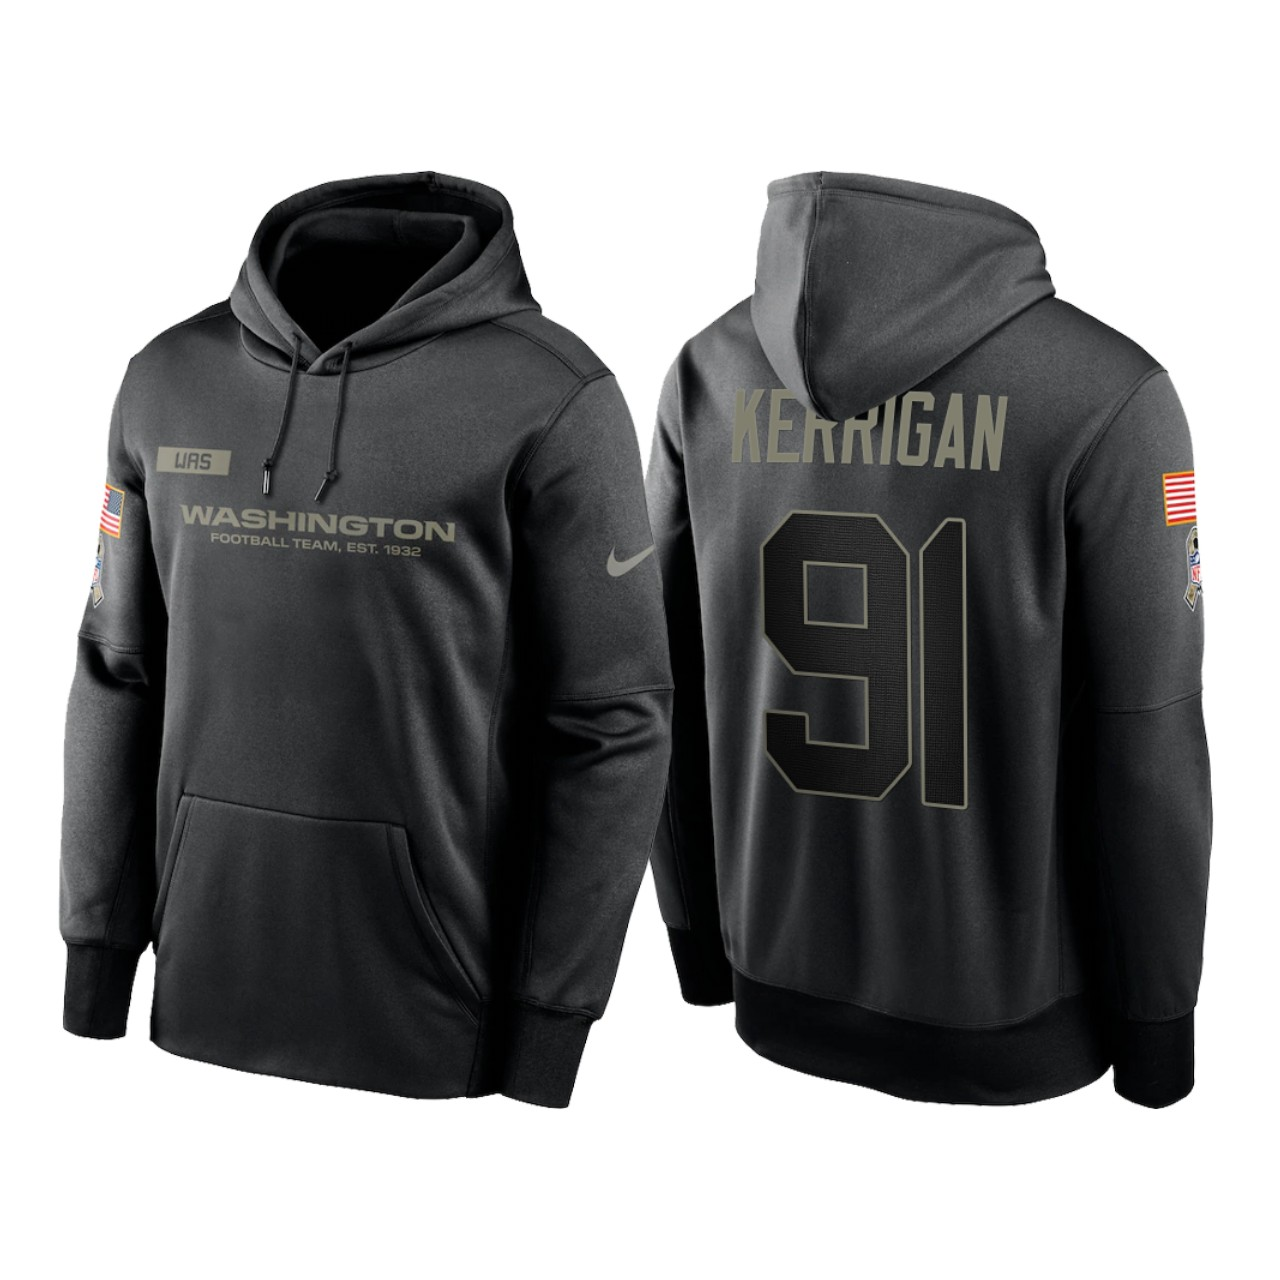 Men's Washington Football Team #91 Ryan Kerrigan 2020 Black Salute to Service Sideline Performance Pullover Hoodie